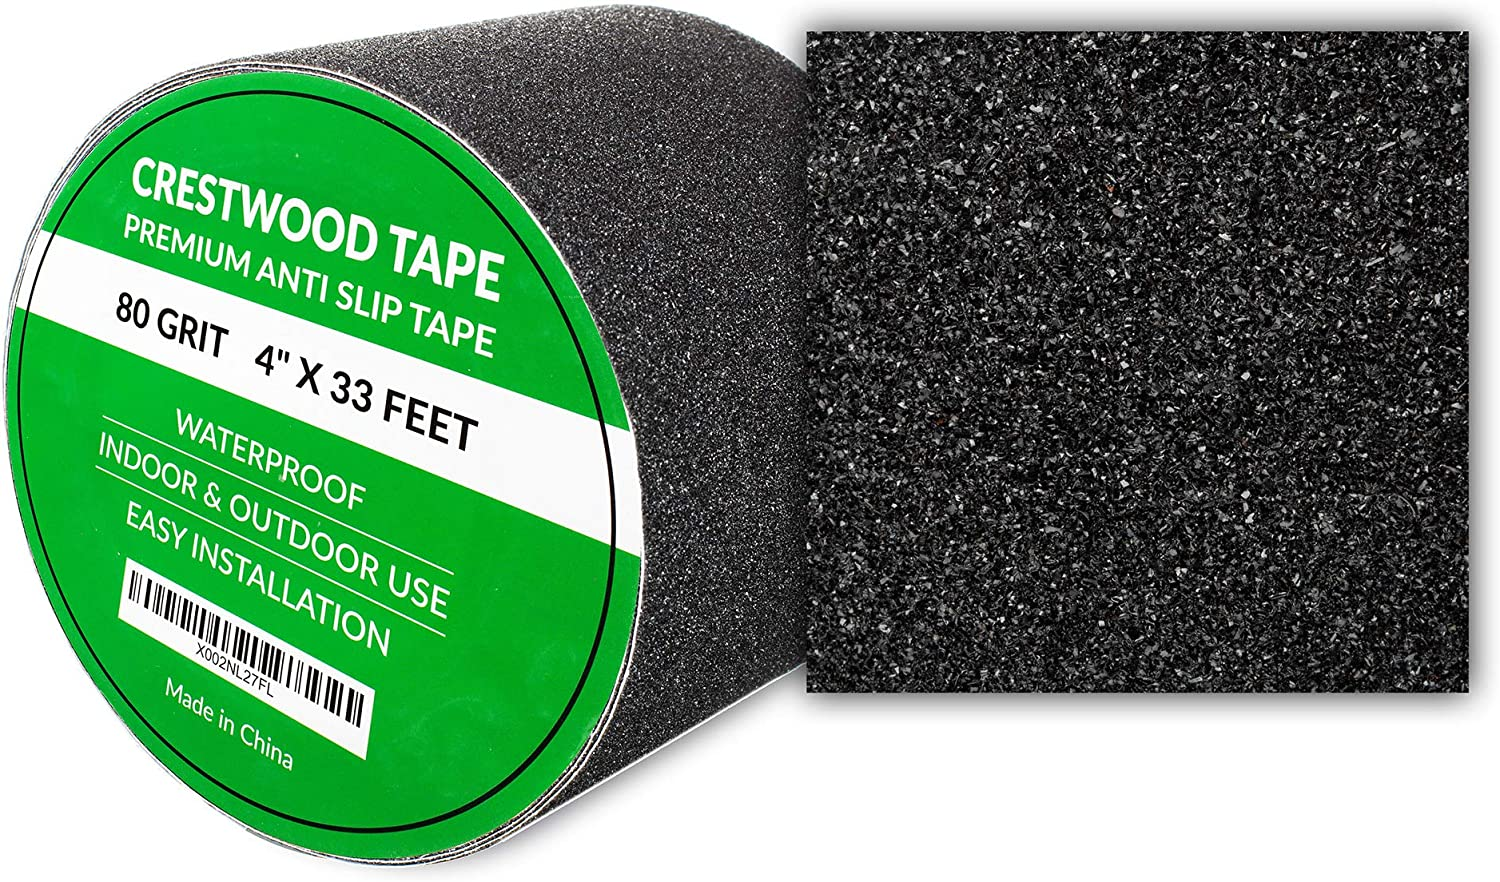 """Waterproof Non Slip Abrasive Adhesive for Indoor and Outdoor Use for Staircase High Traction and Strong Grip Tape for Stairs Heavy Duty Anti Slip Tape Walkway 4/"""" x 33 Feet Deck"""